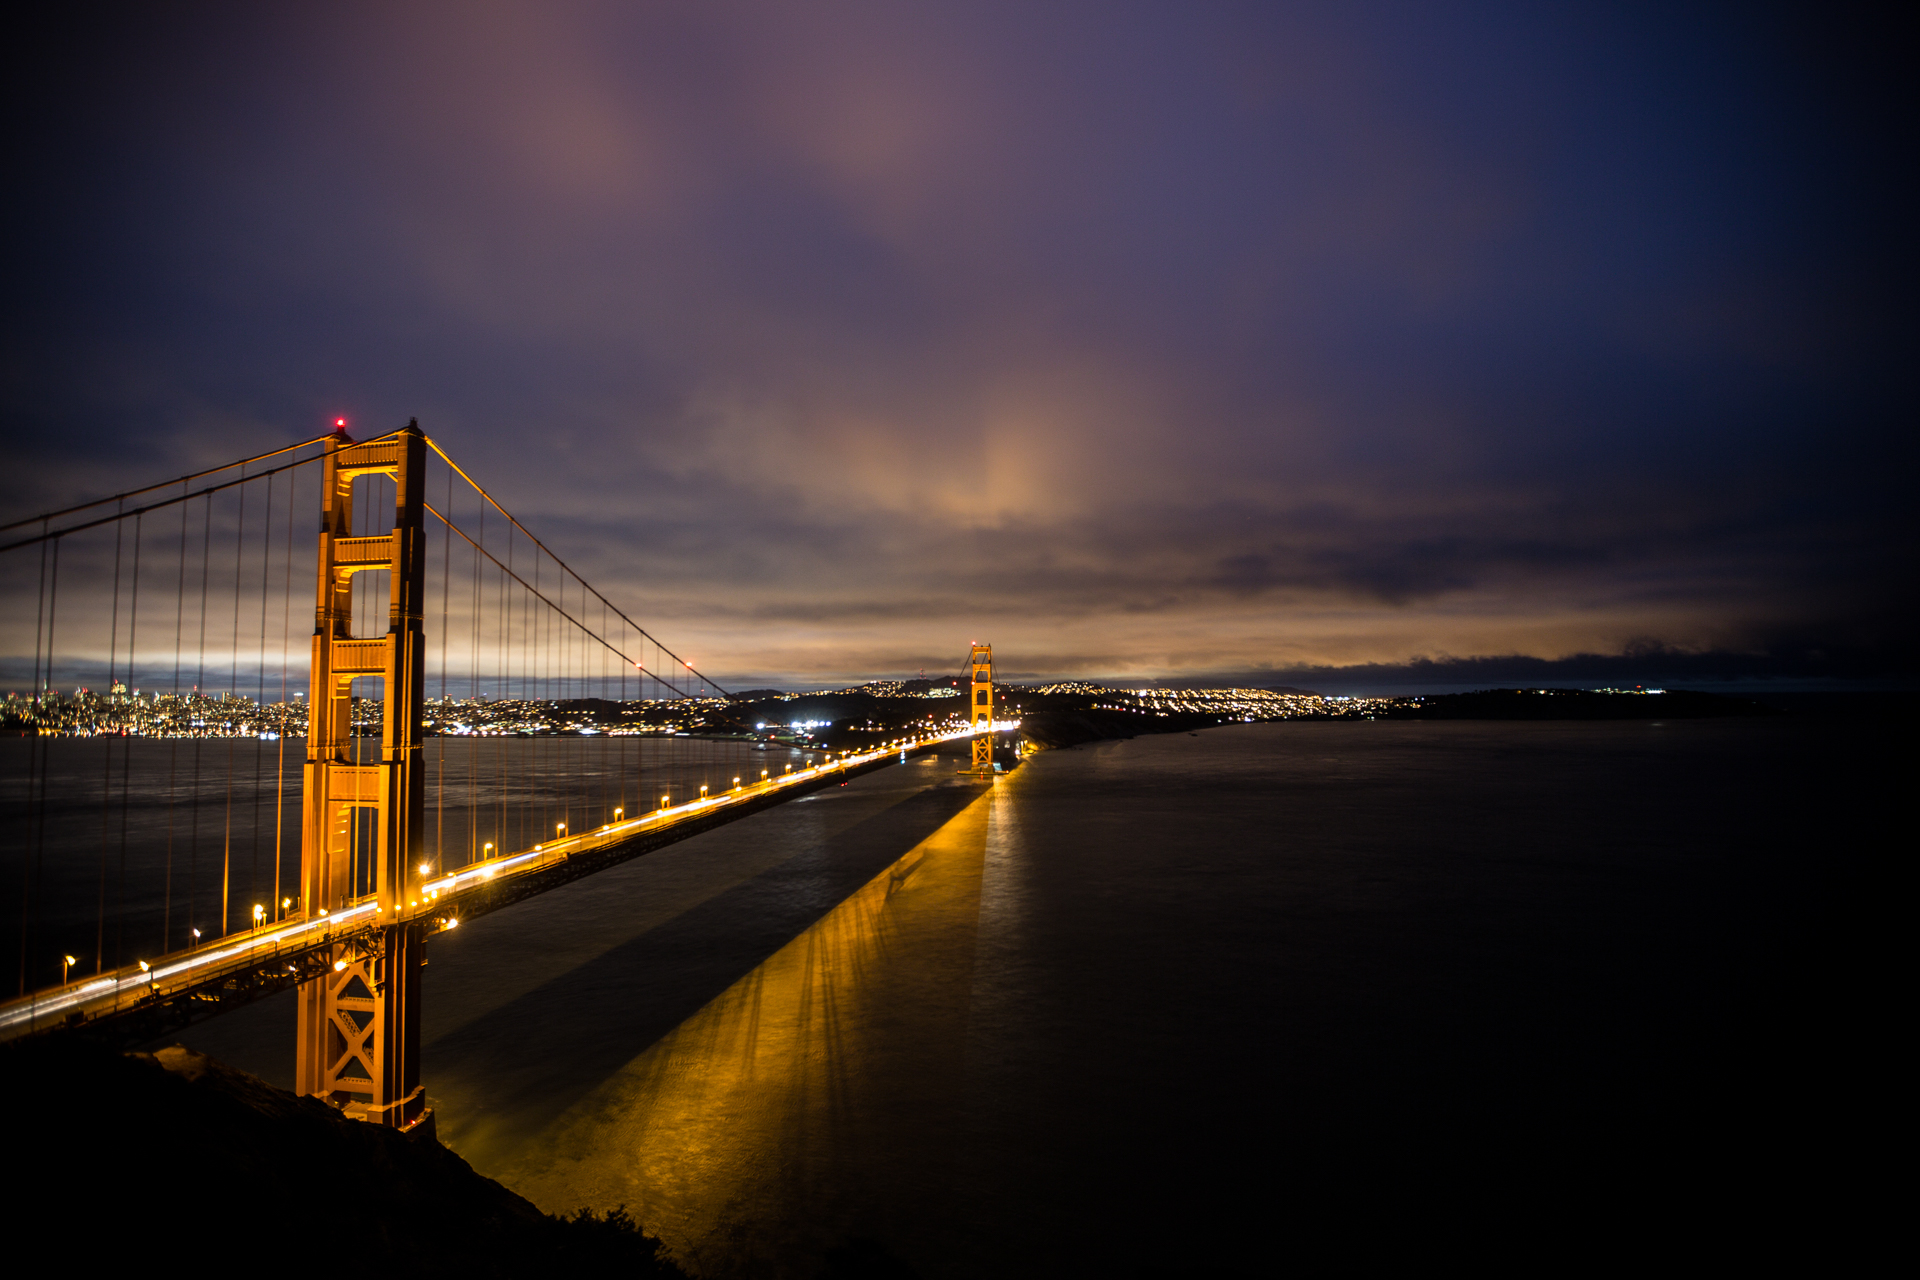 San_Francisco_Wedding_Photographer_Sees_The_Day_014.jpg